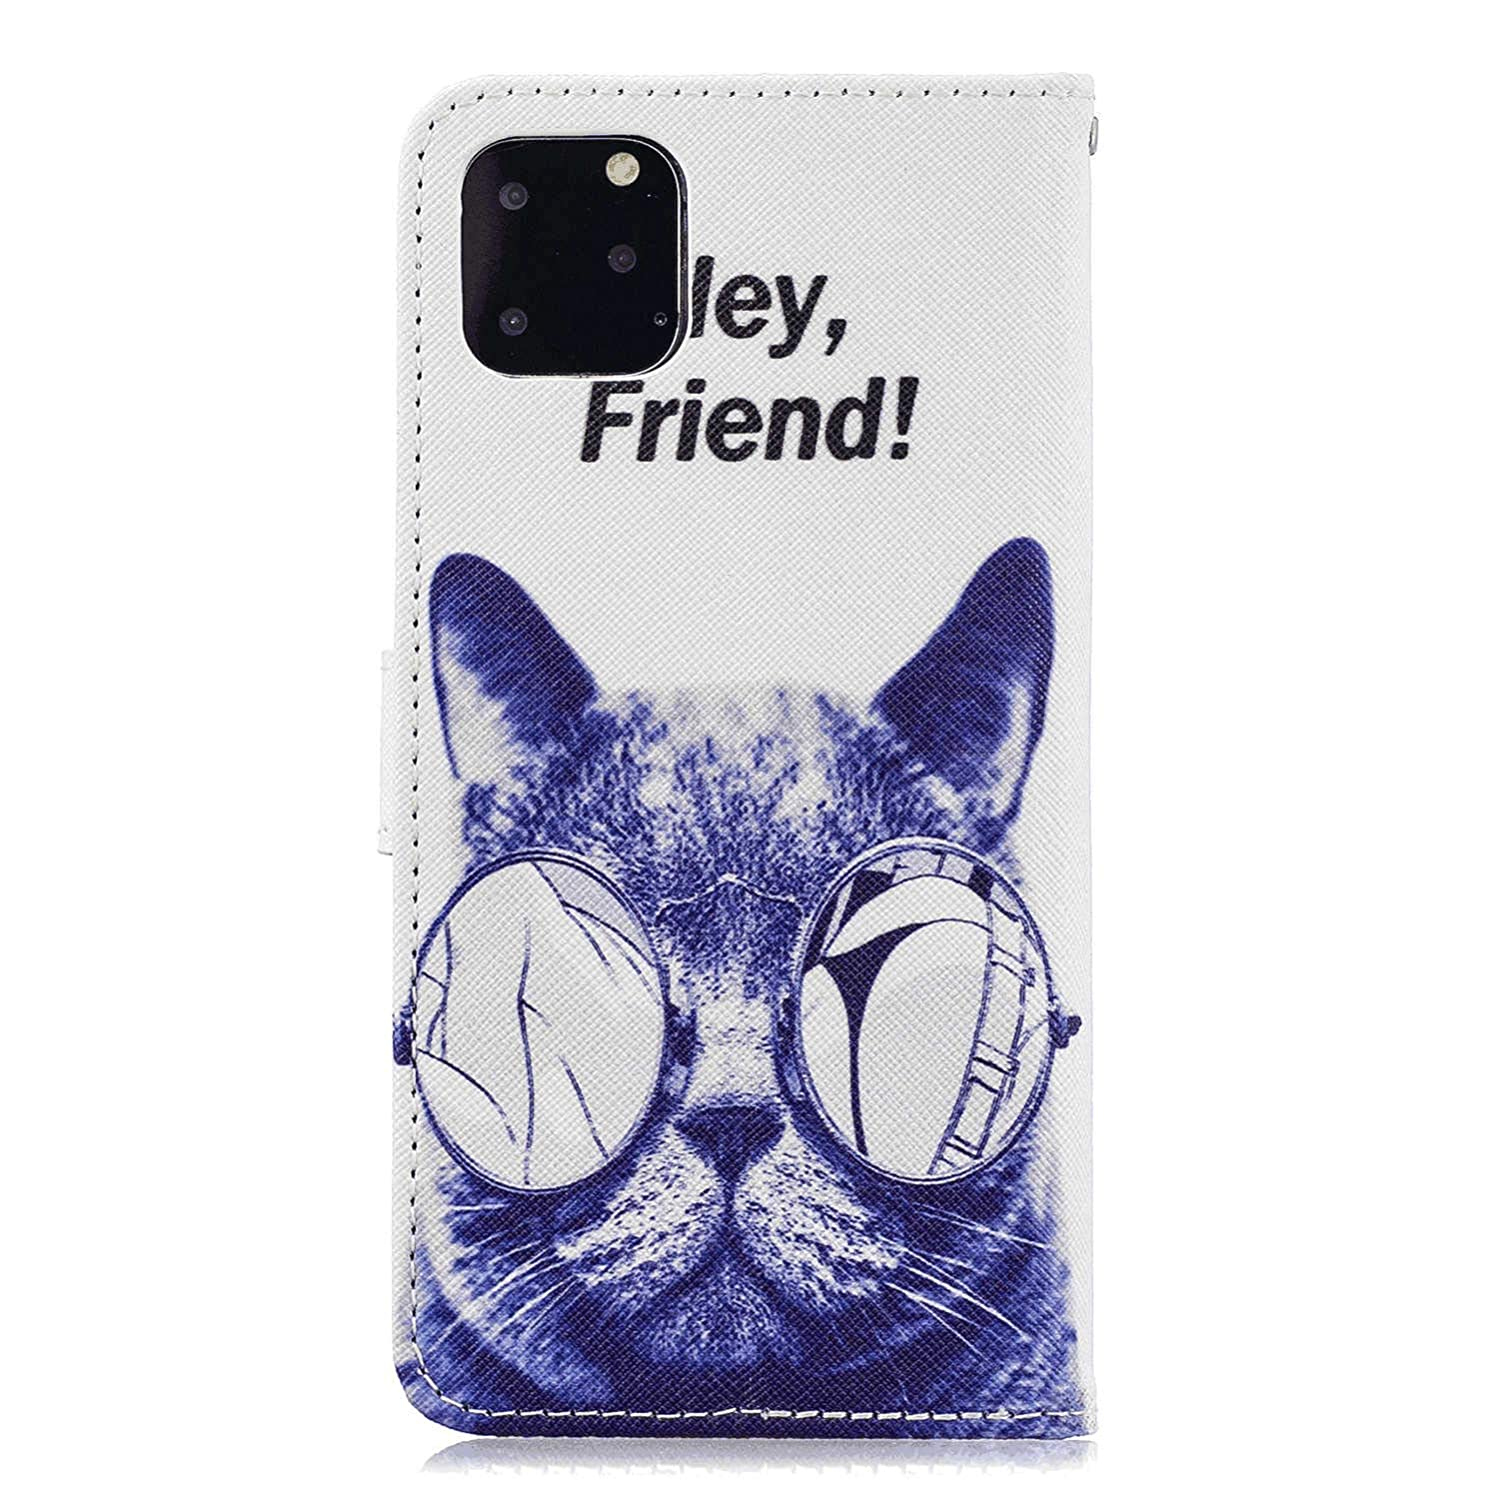 Samsung Galaxy A60 Flip Case Cover for Samsung Galaxy A60 Leather Extra-Protective Business Cell Phone Cover Kickstand Card Holders Flip Cover